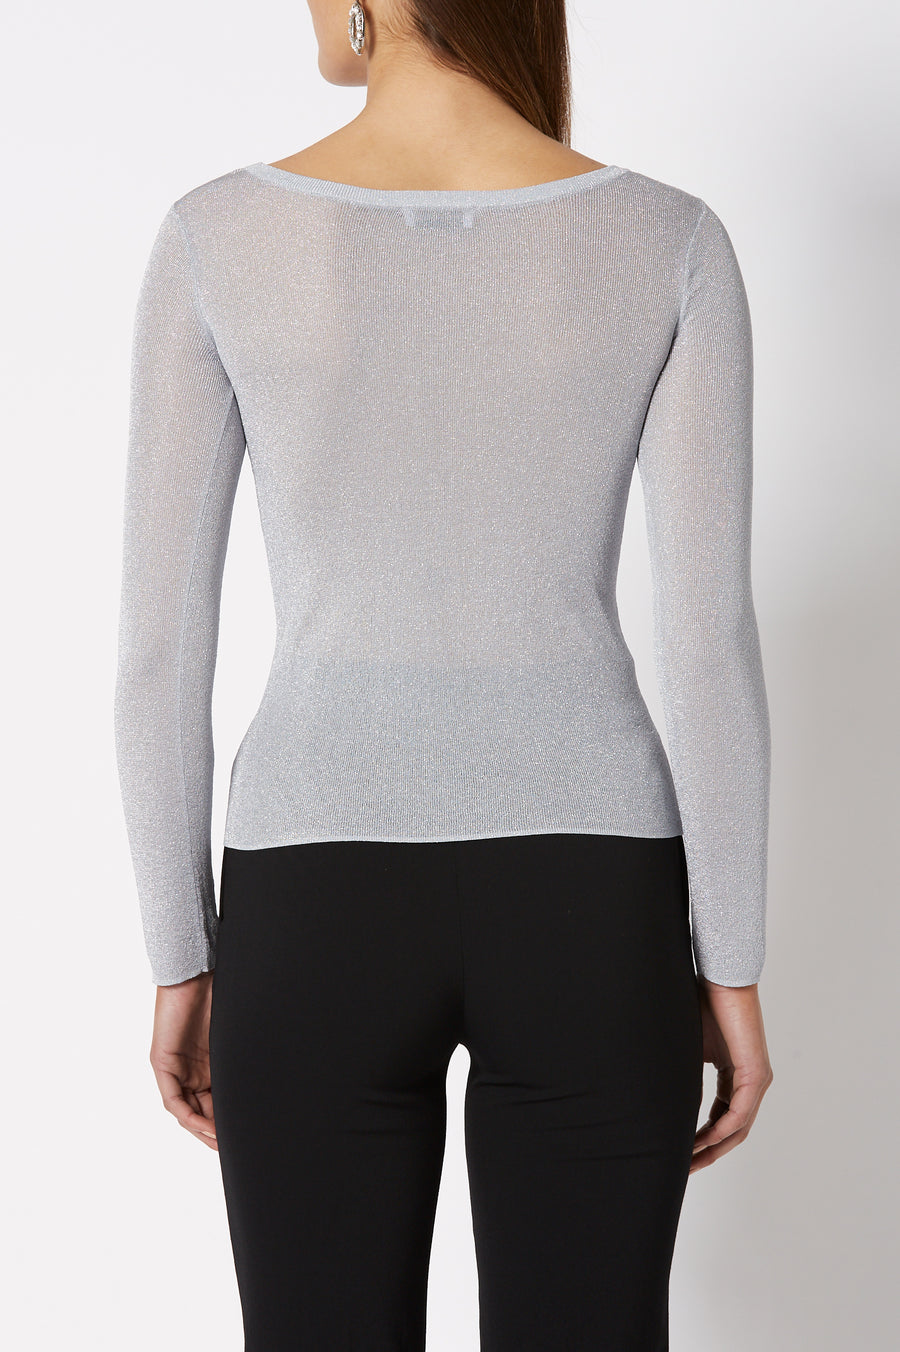 Sparkle Rib Boat Neck Sweater has a boatneck and is designed for a slim fit, color silver